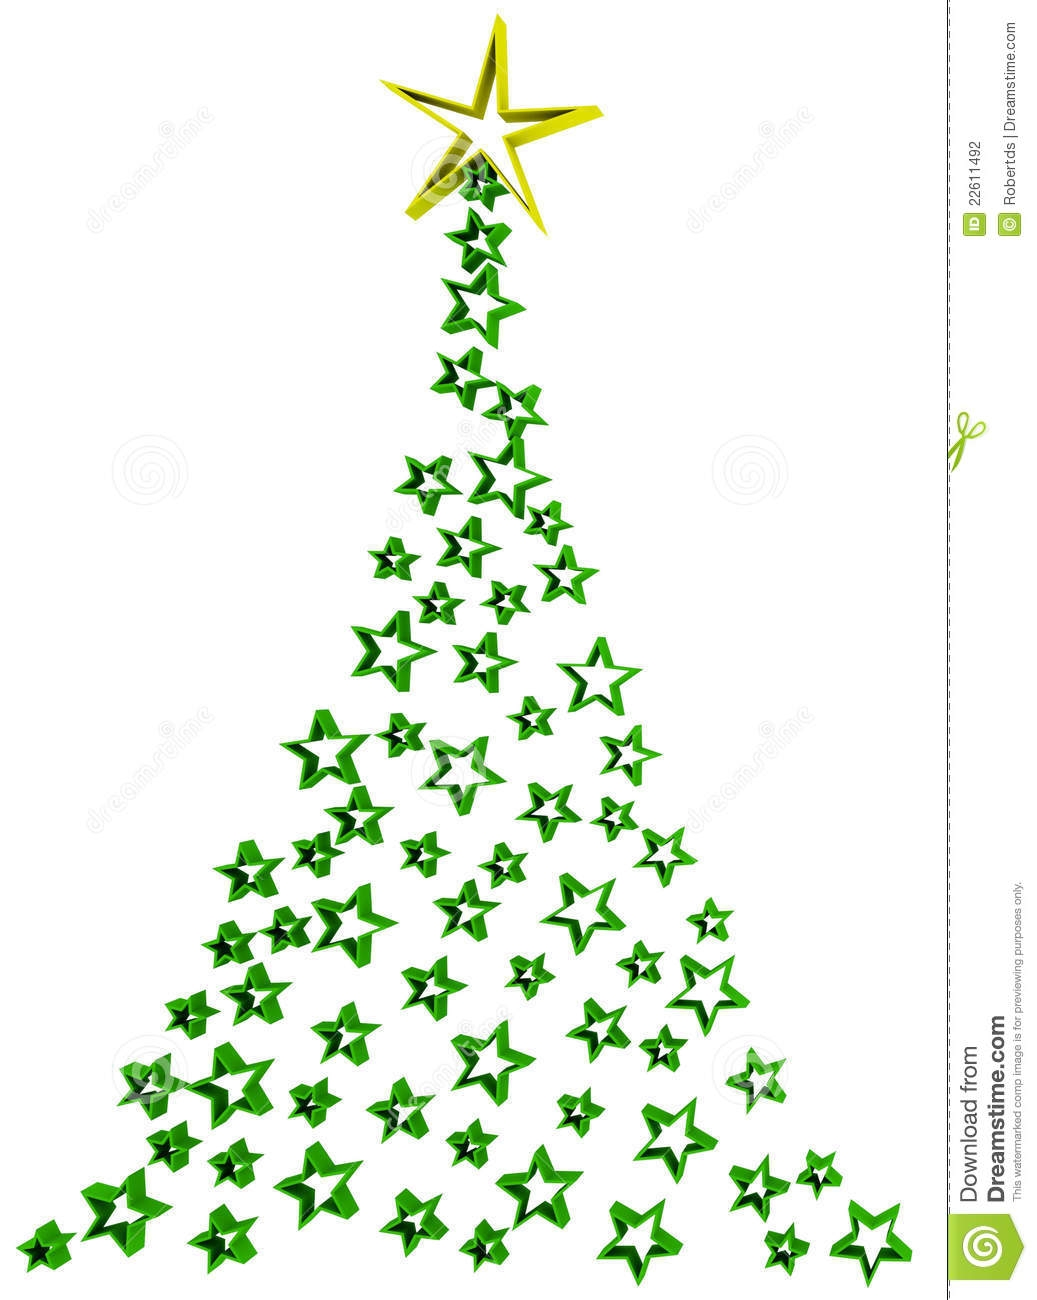 Abstract christmas tree clipart 4 » Clipart Station image black and white stock